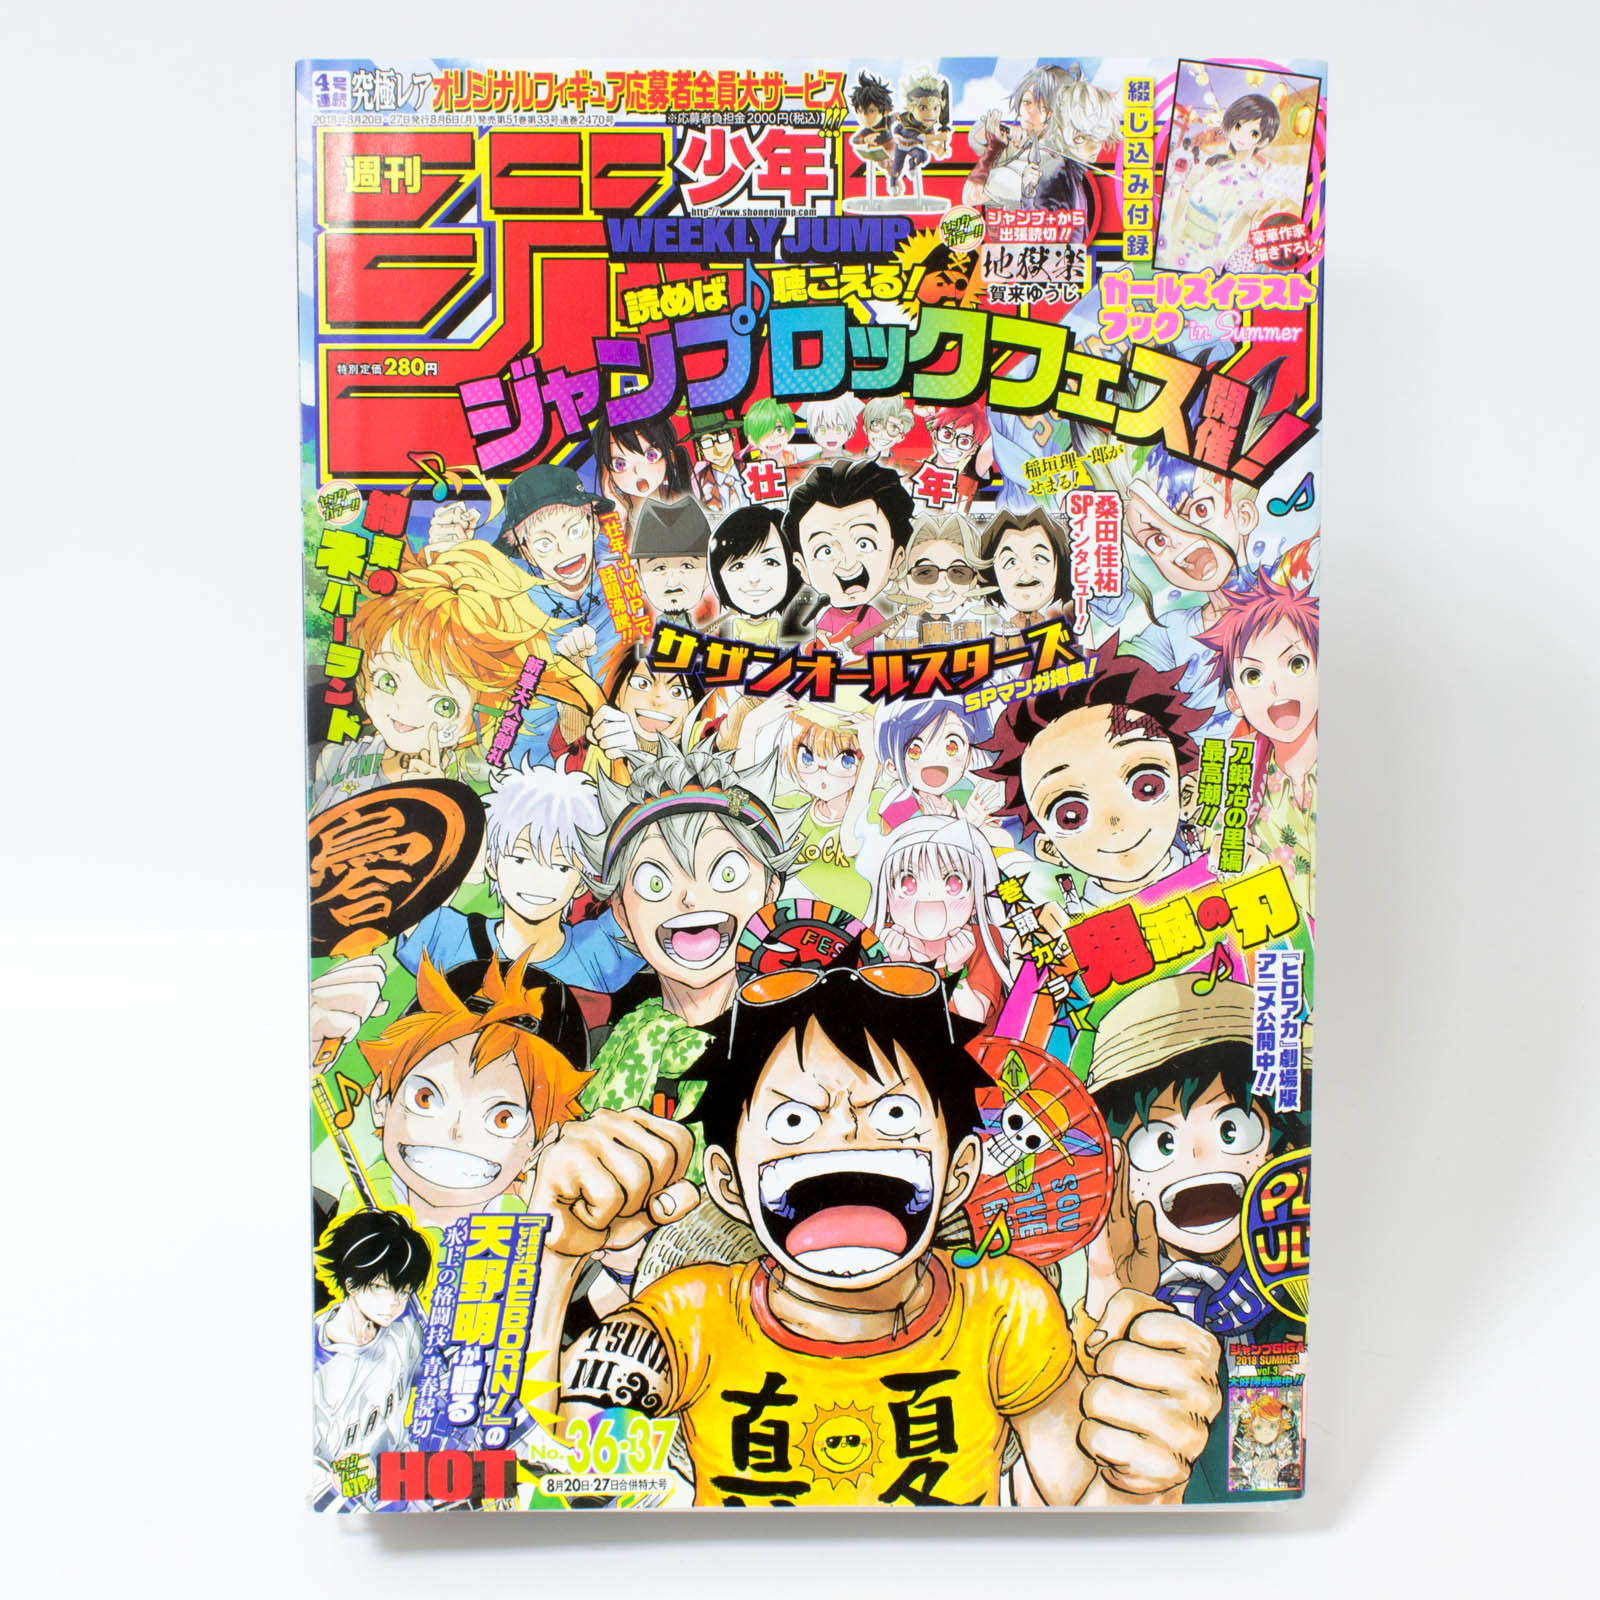 Weekly Shonen JUMP Vol.36-37 2018 (combined number) / Japanese Magazine JAPAN MANGA